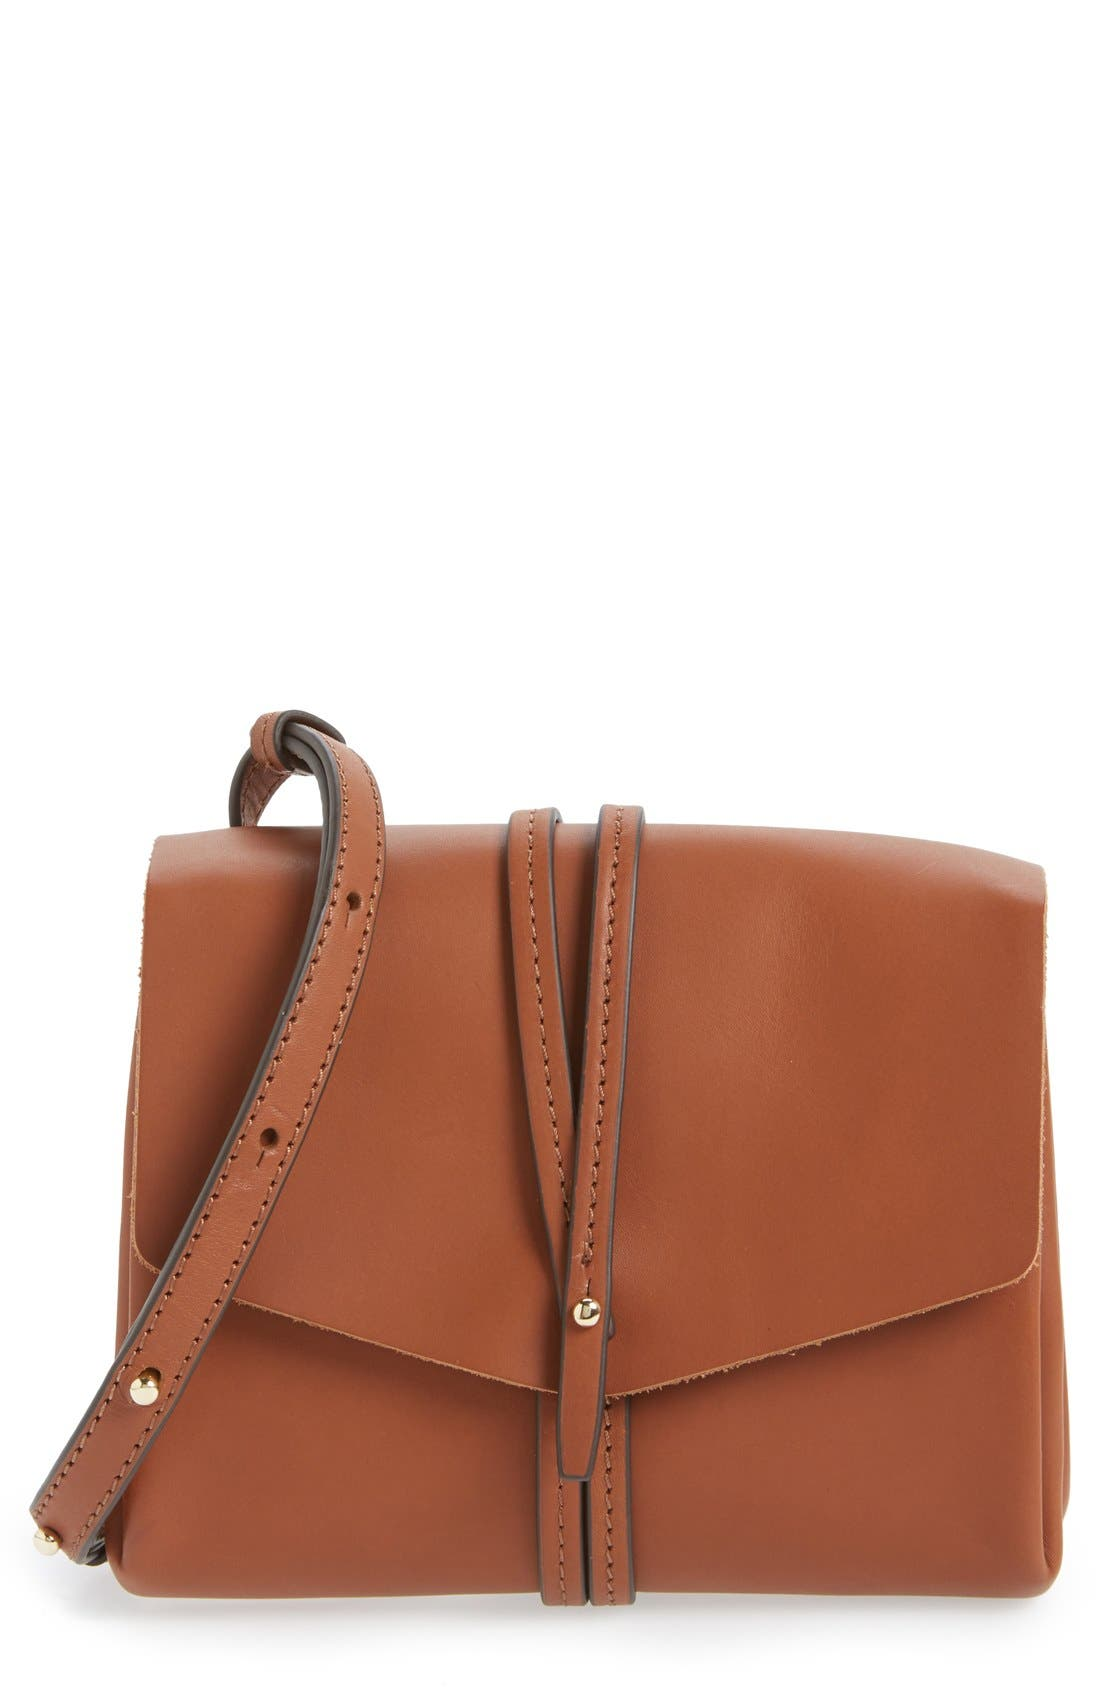 Main Image - Vince Camuto 'Tuck' Leather Crossbody Bag